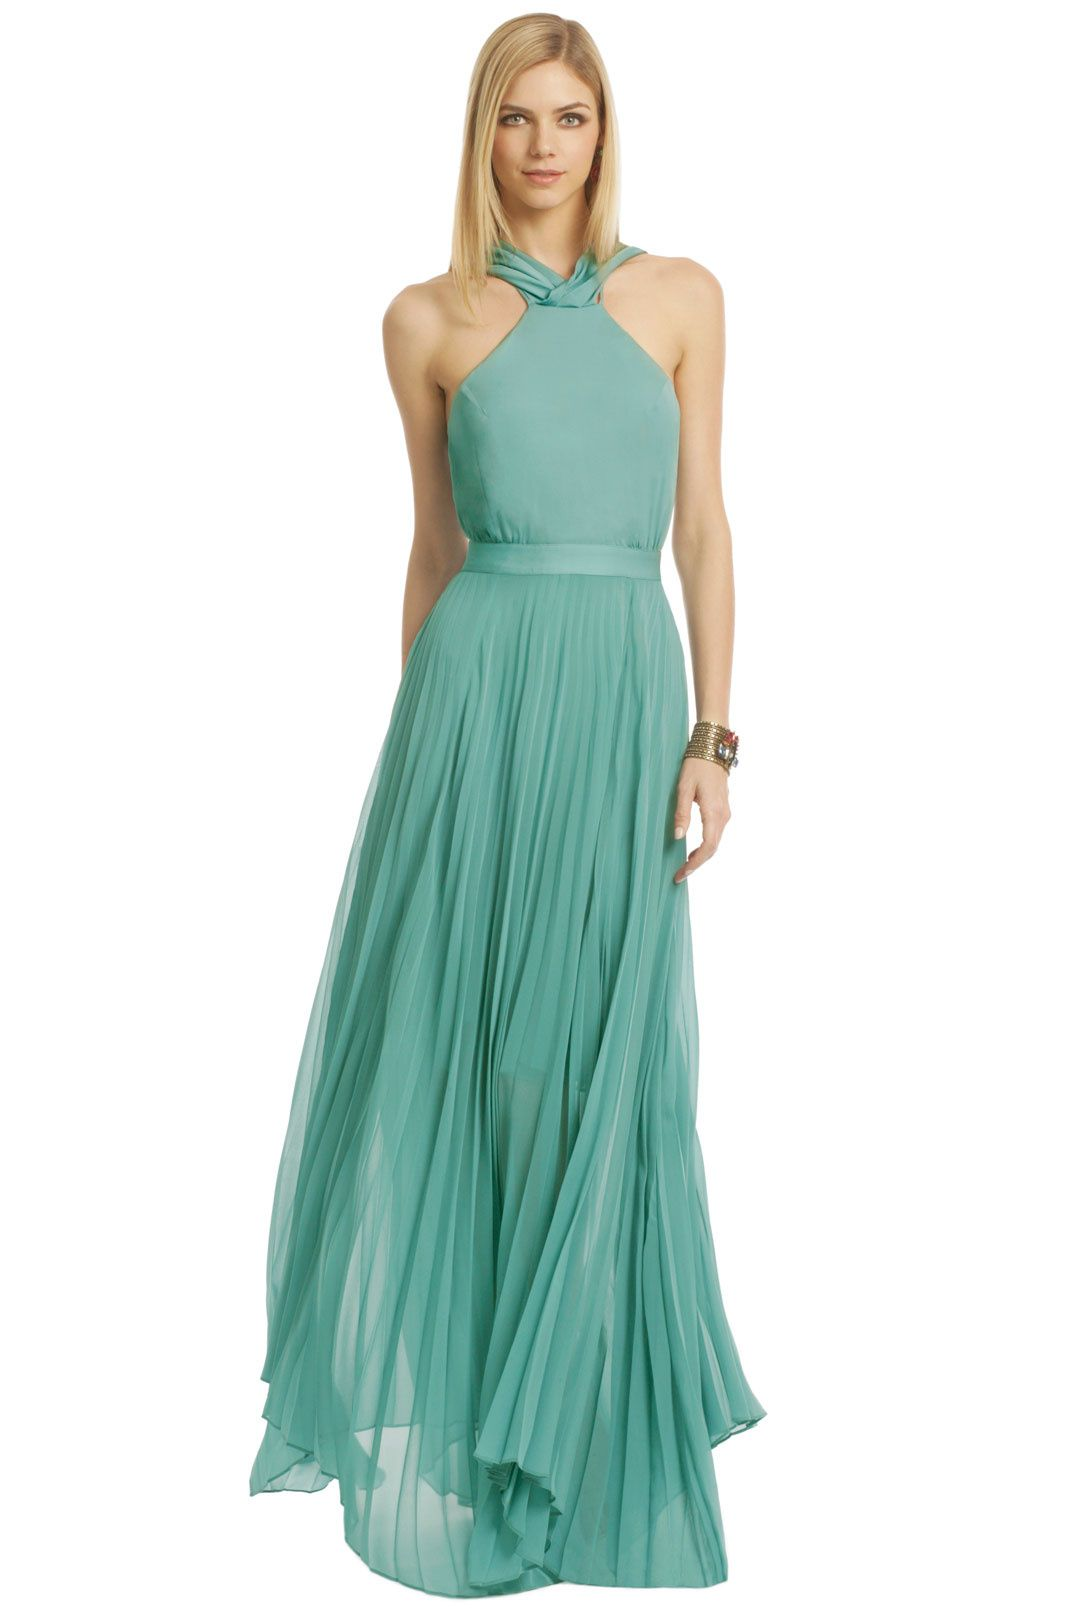 Comfortable Rent Prom Dress Online Photos - Wedding Ideas ...